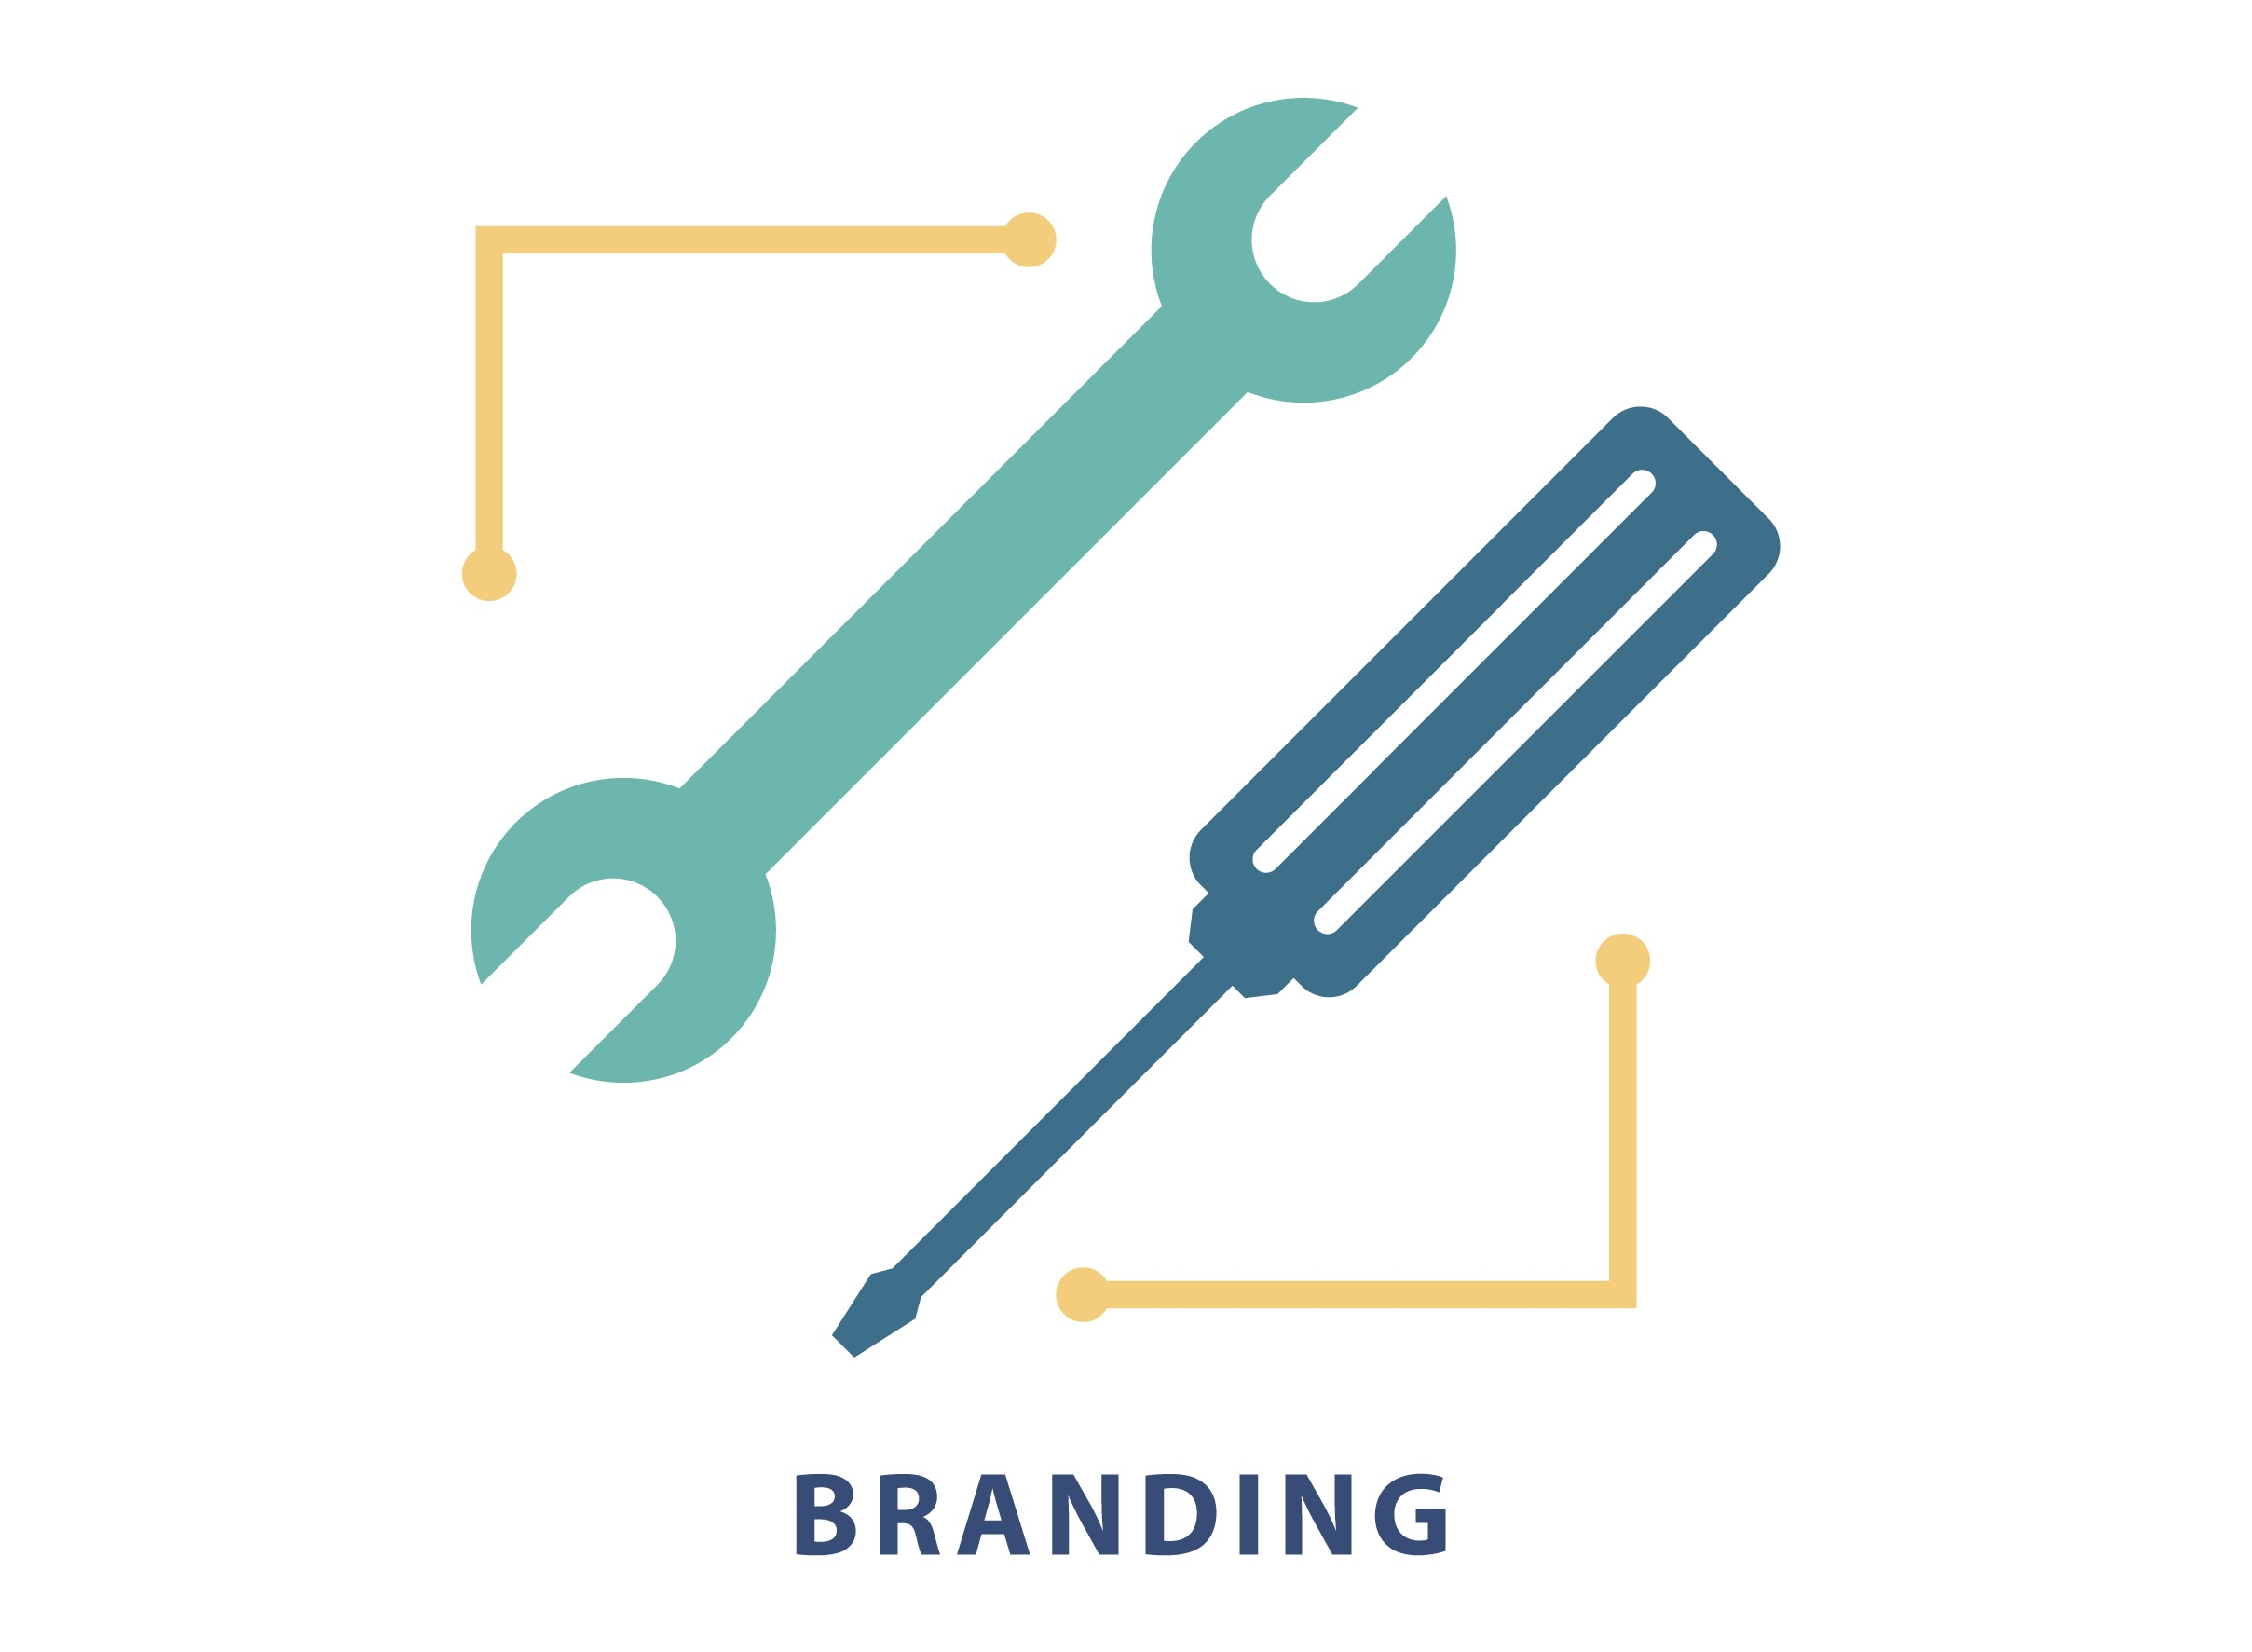 5 Ways To Brand Your Start-Up